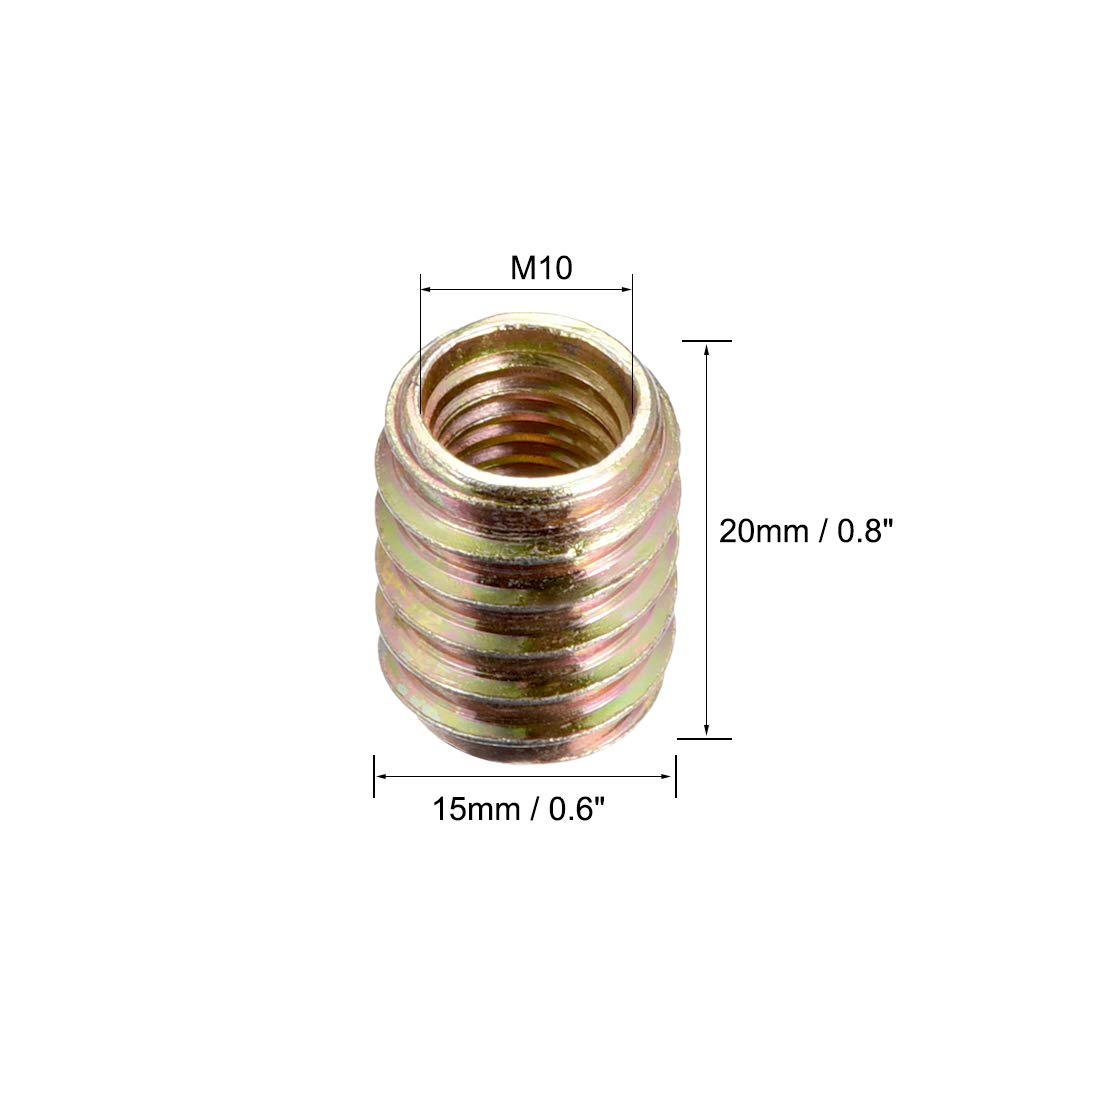 uxcell Furniture Threaded Insert Nuts Carbon Steel M6 Internal Thread 20mm Length 20pcs a18072600ux0238